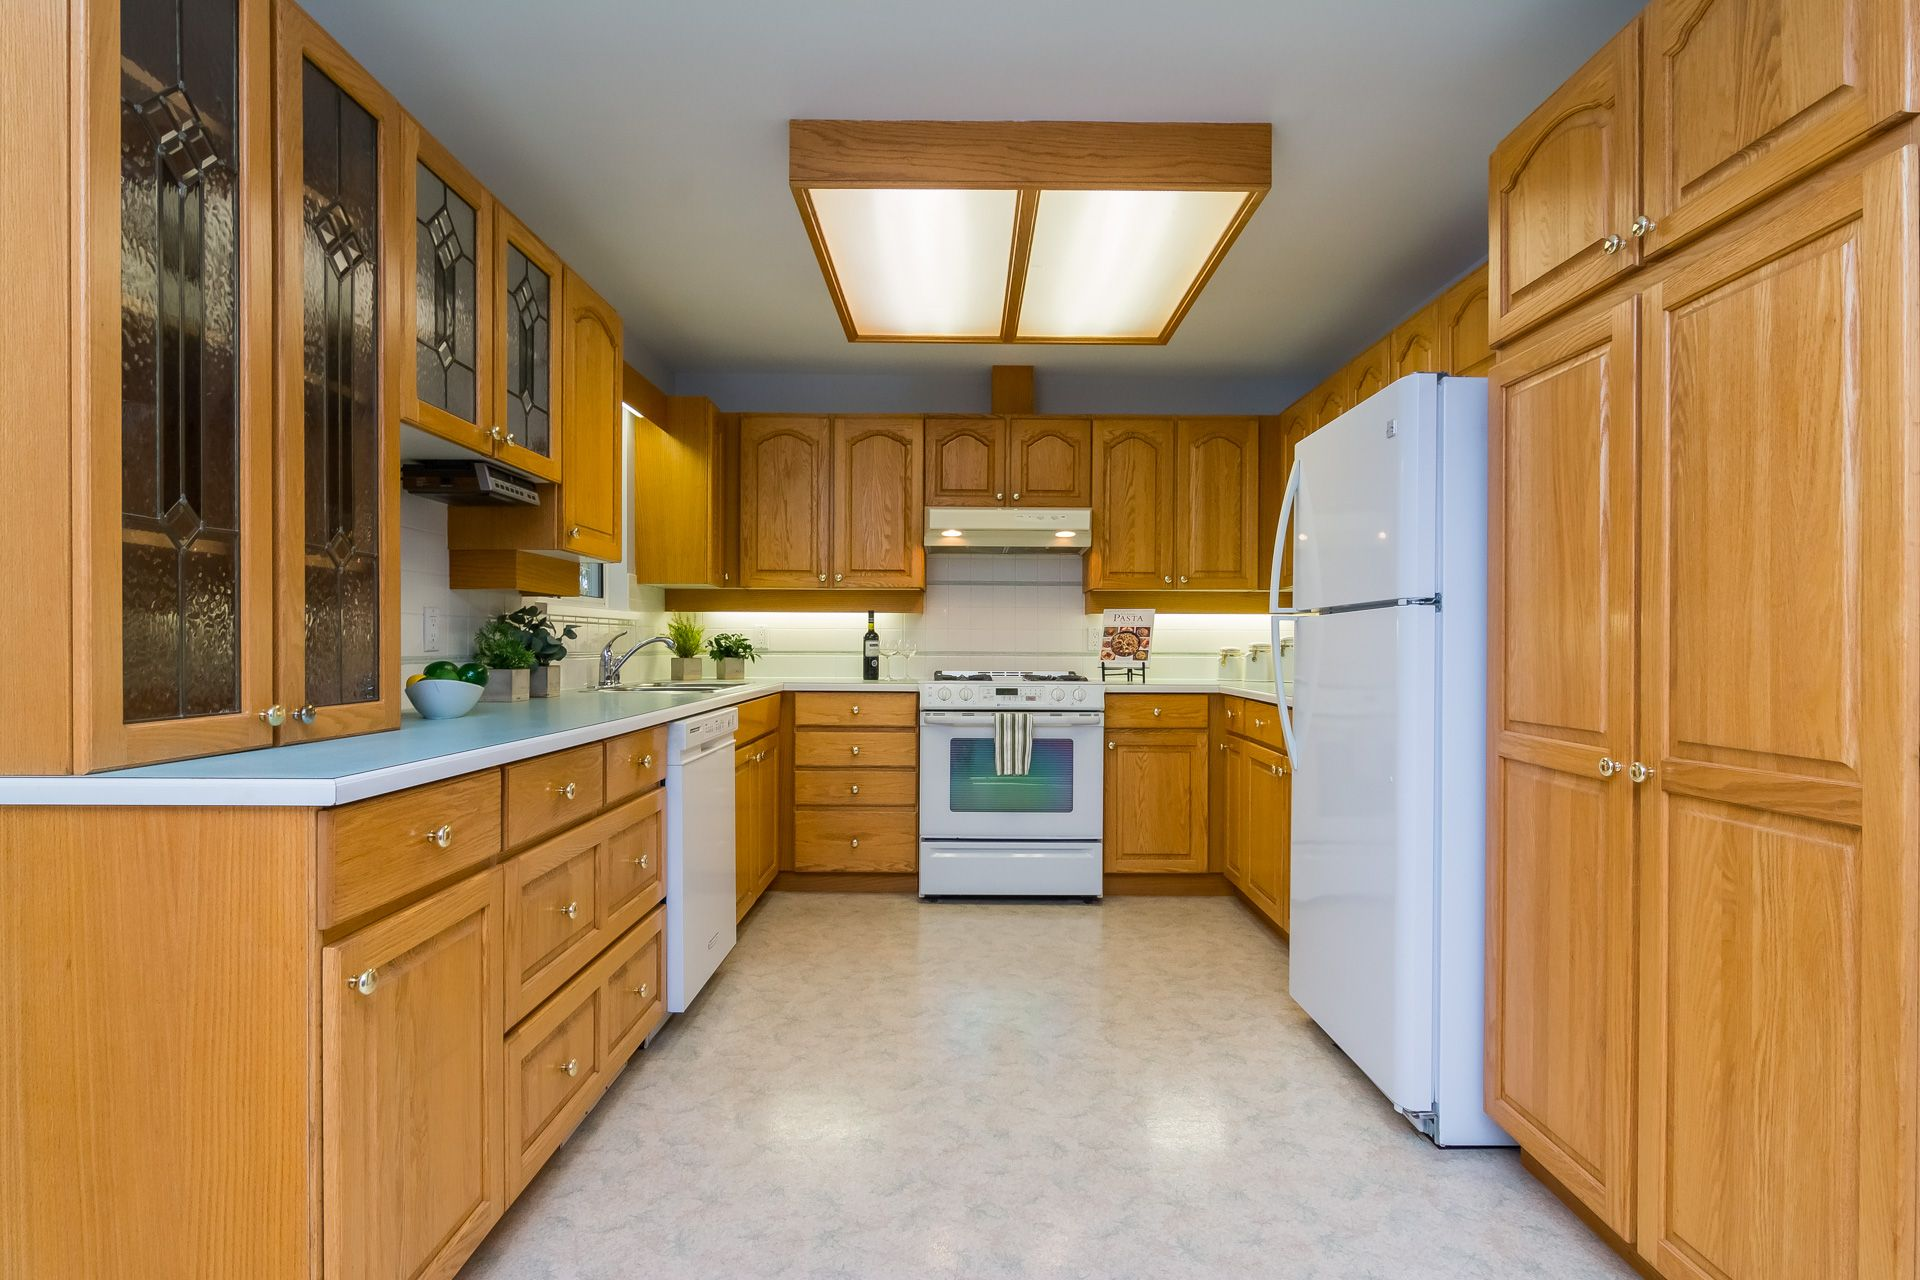 """Photo 15: Photos: 19941 37 Avenue in Langley: Brookswood Langley House for sale in """"Brookswood"""" : MLS®# R2240474"""